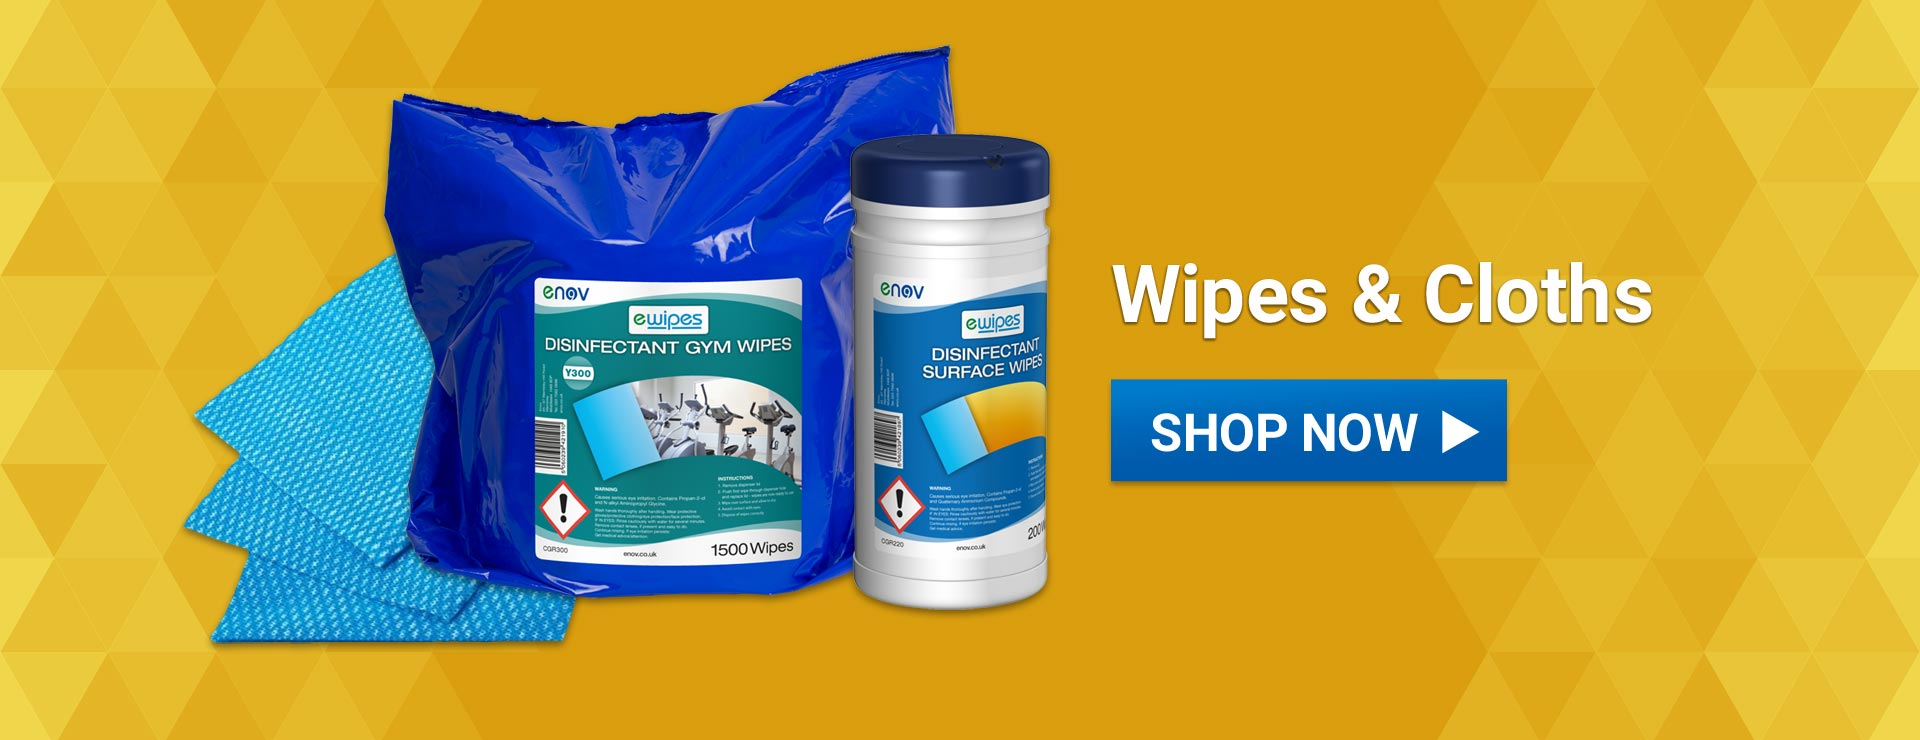 Wipes & Cloths Wipes & Cloths